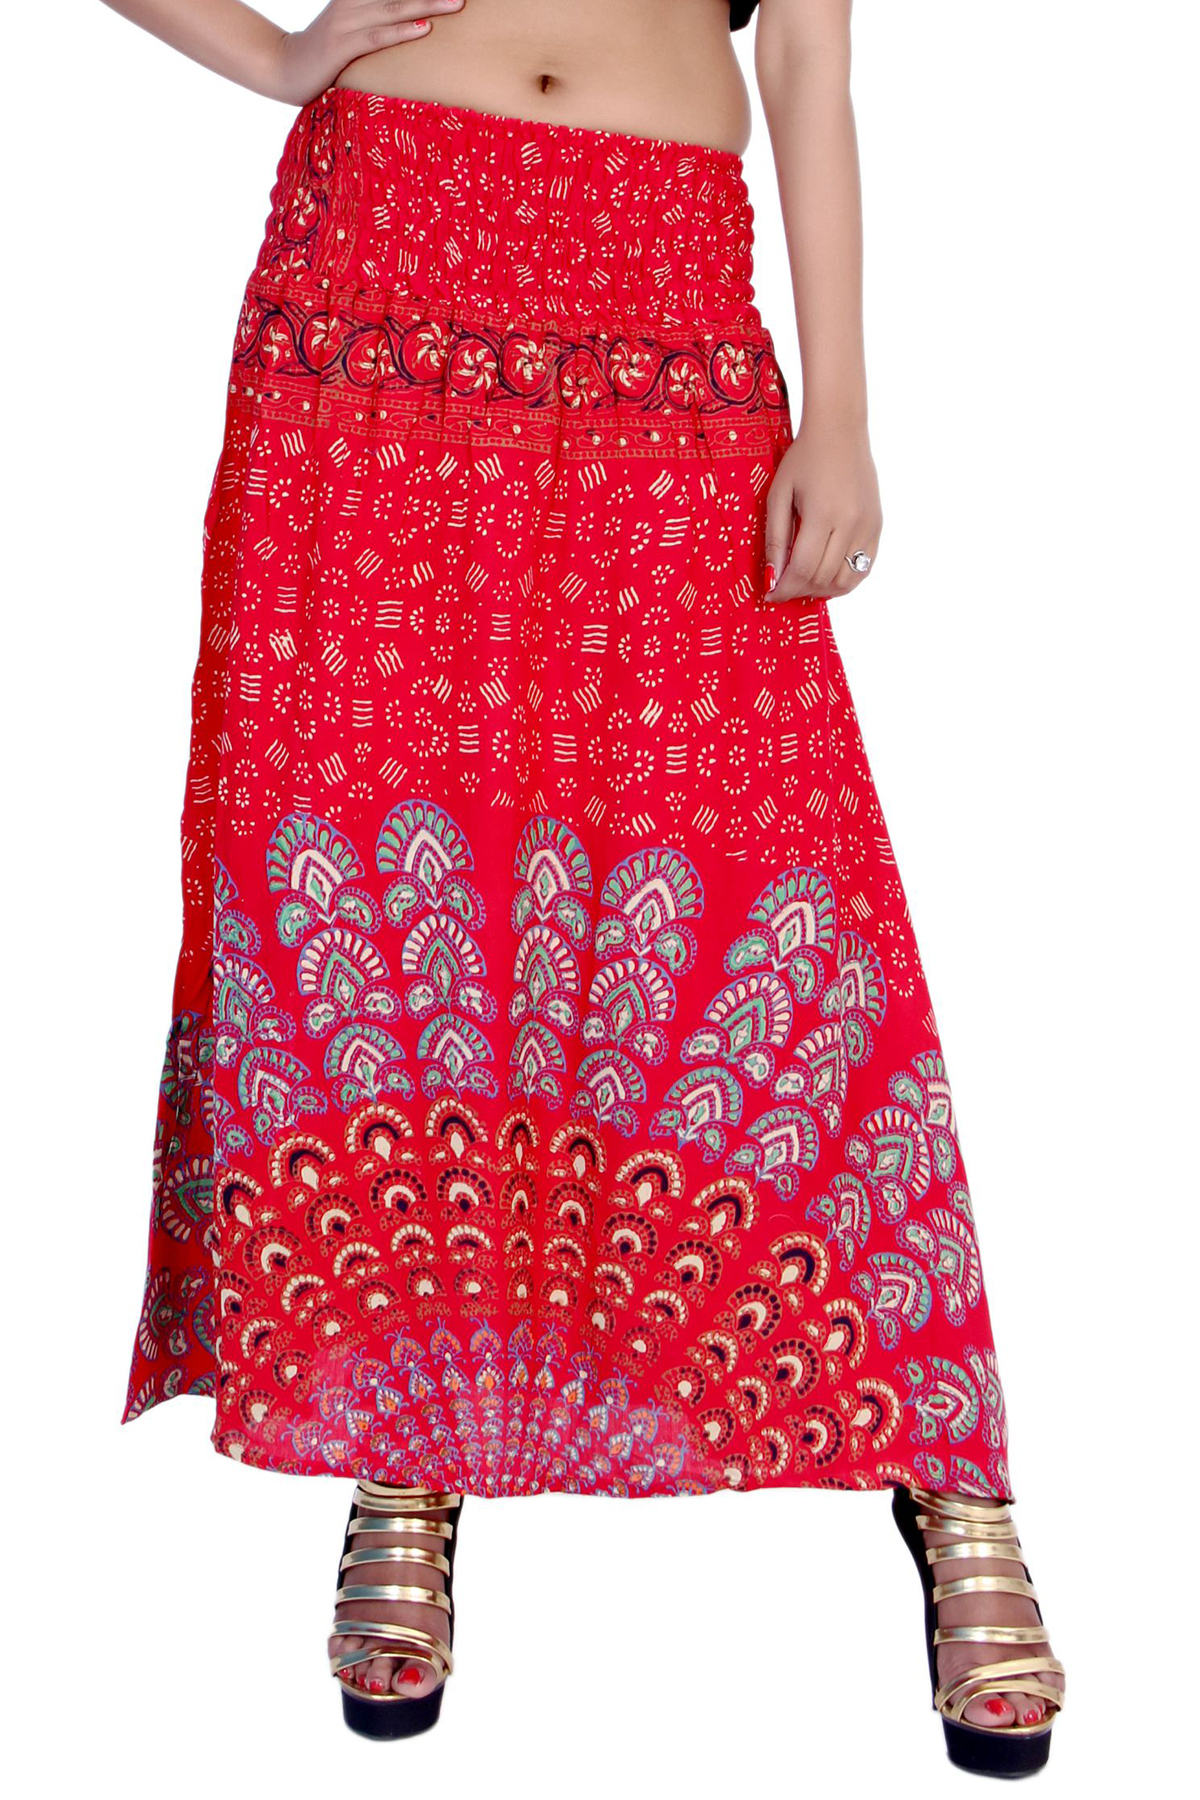 Ethnic Home Decor Online Shopping India Online Shopping India Online Fashion For Womens Skirts